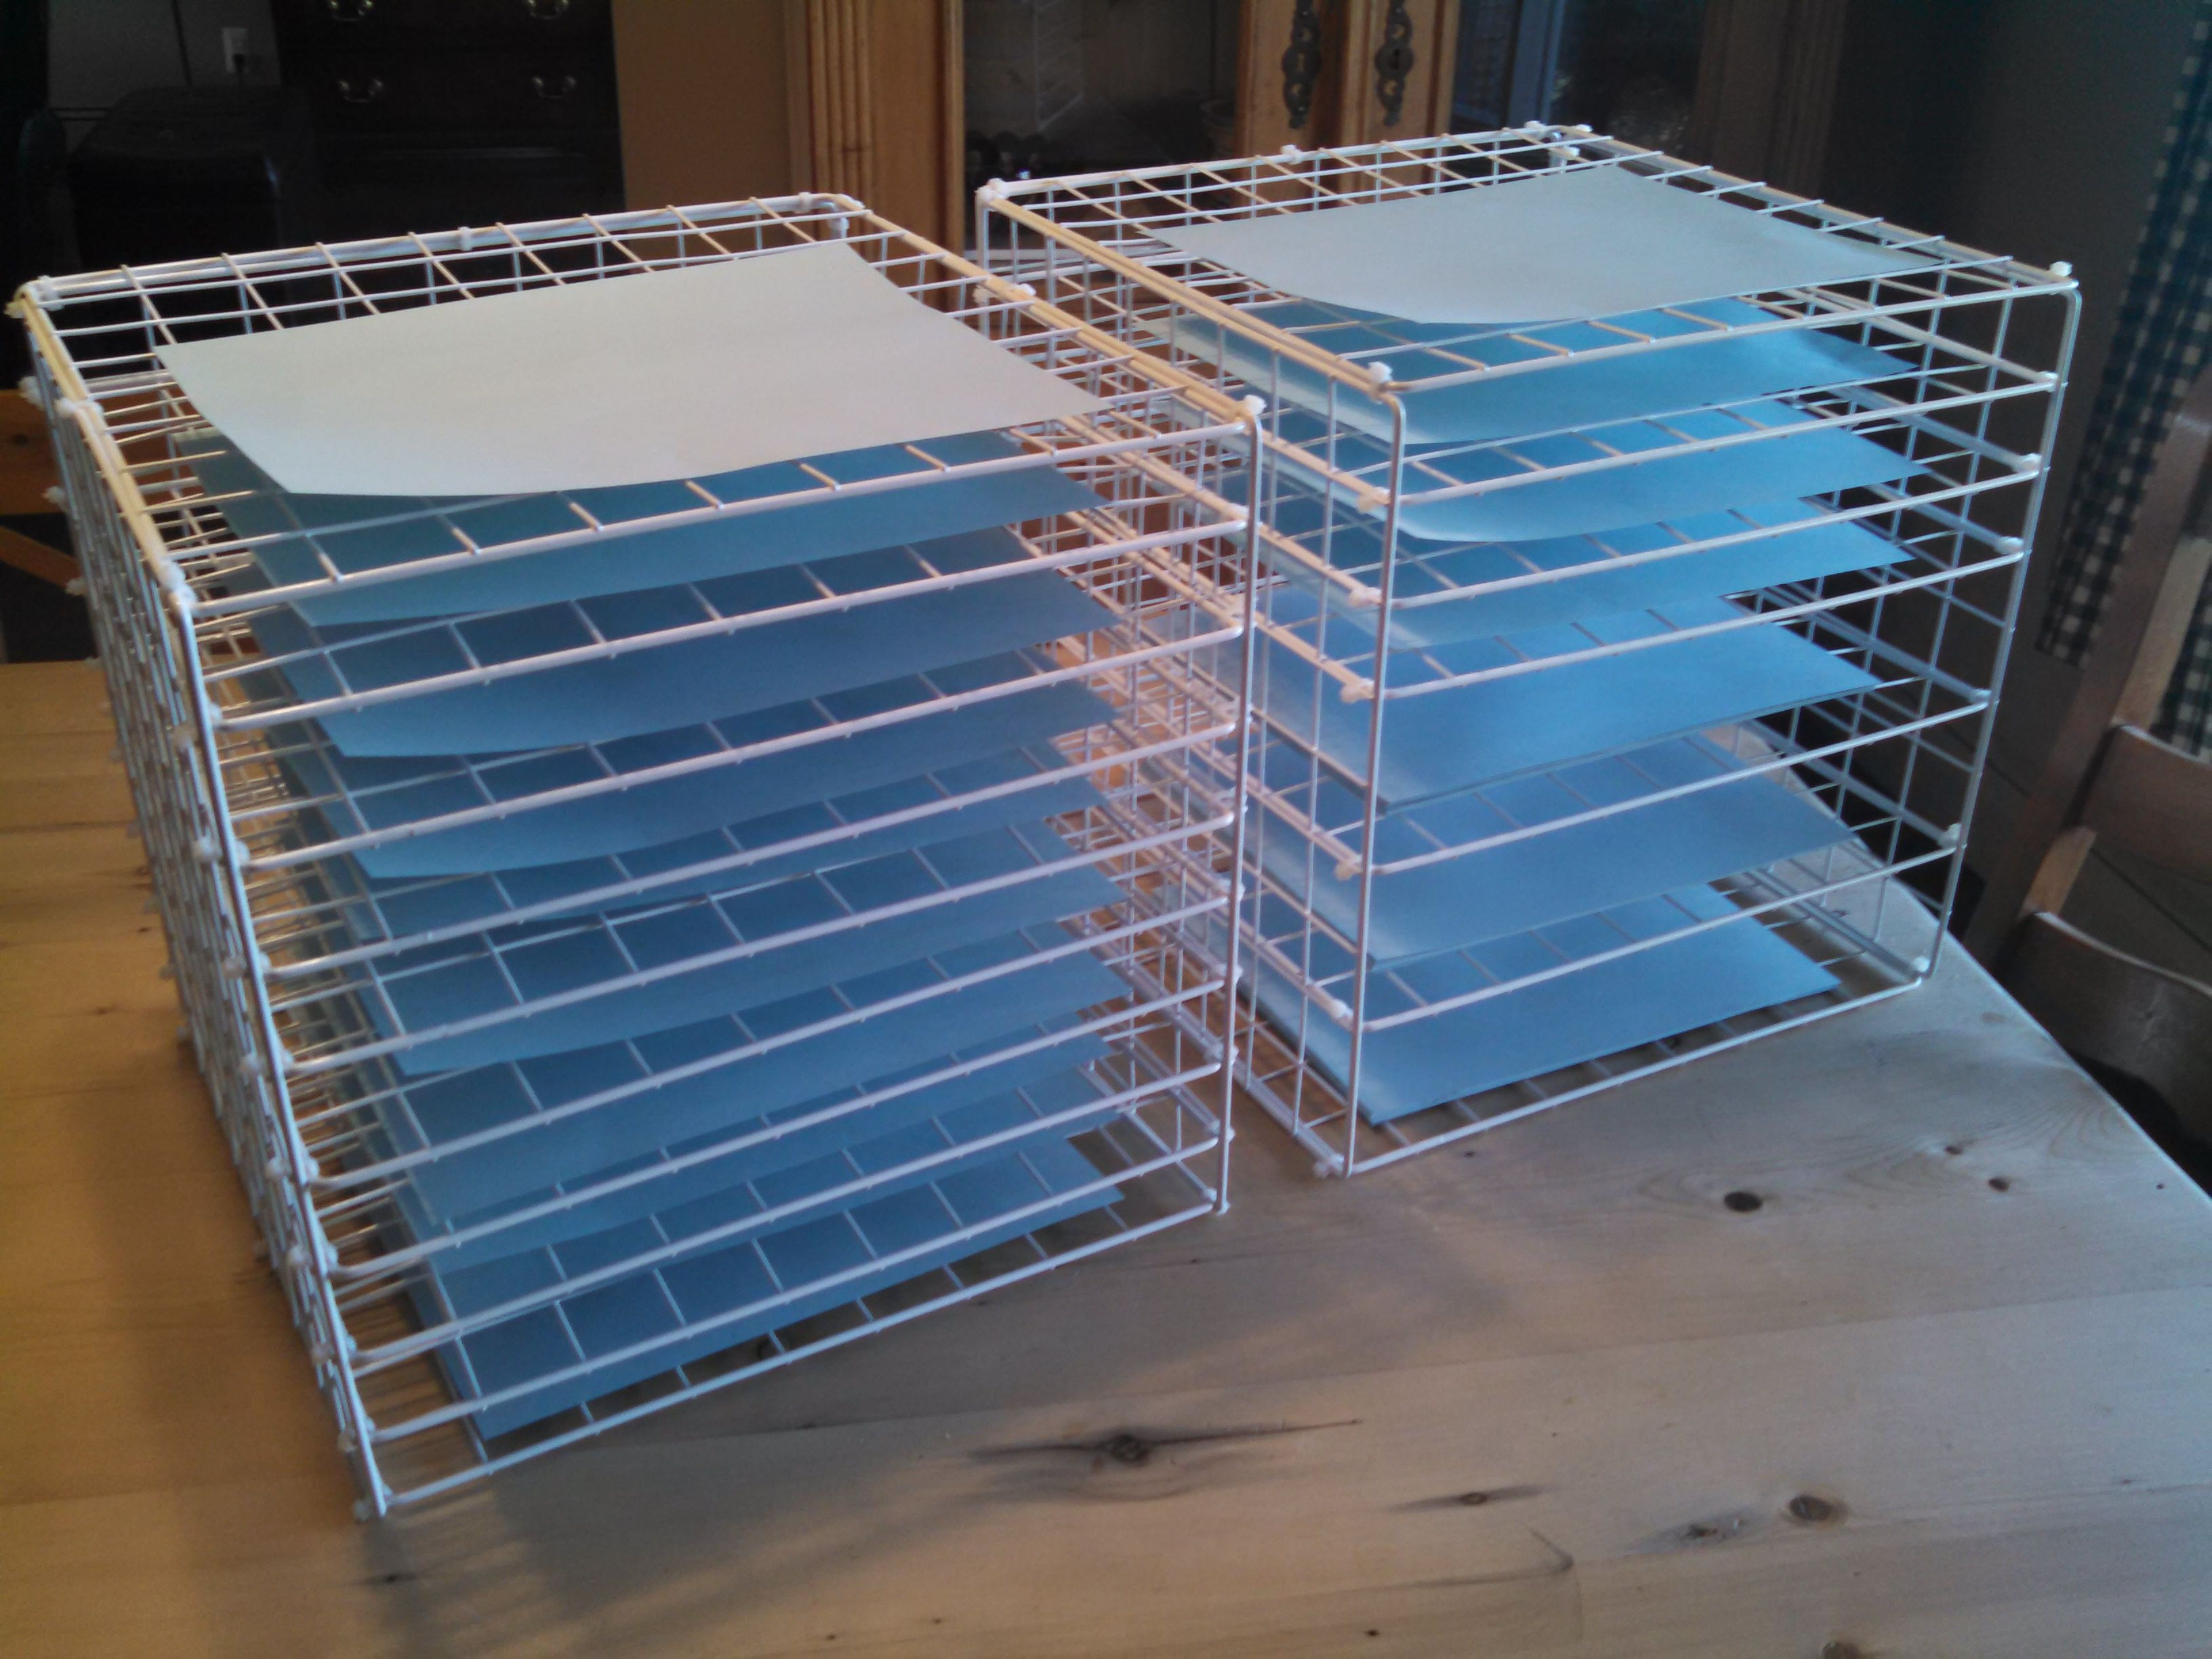 art drying racks shown with papers